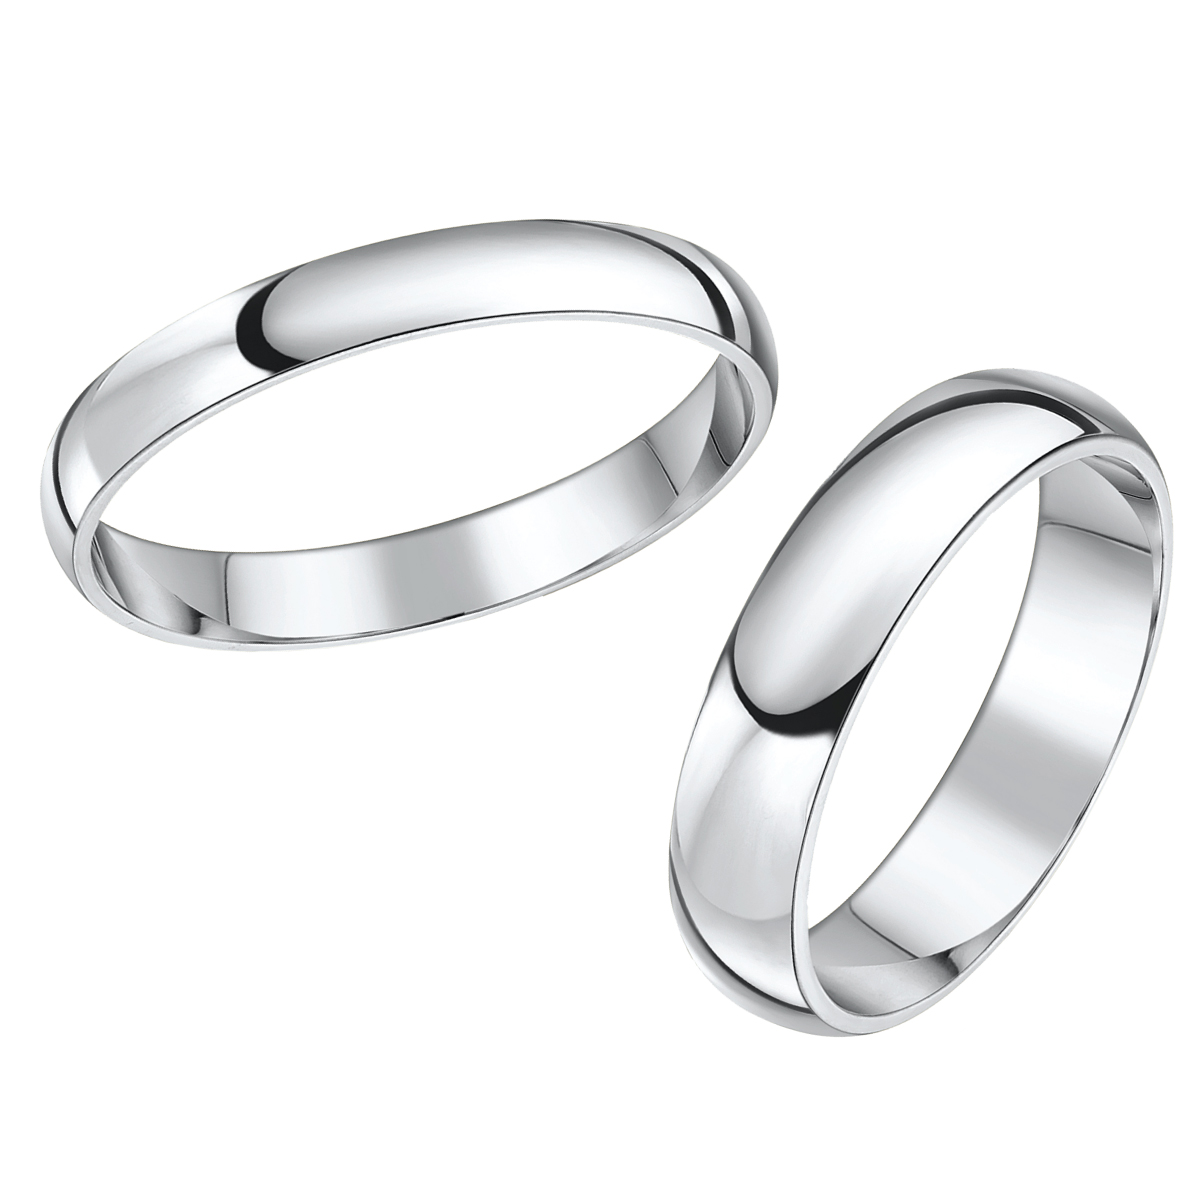 Platinum his and hers wedding rings wedding bands his - Platinum His And Hers Wedding Rings Wedding Bands His 17